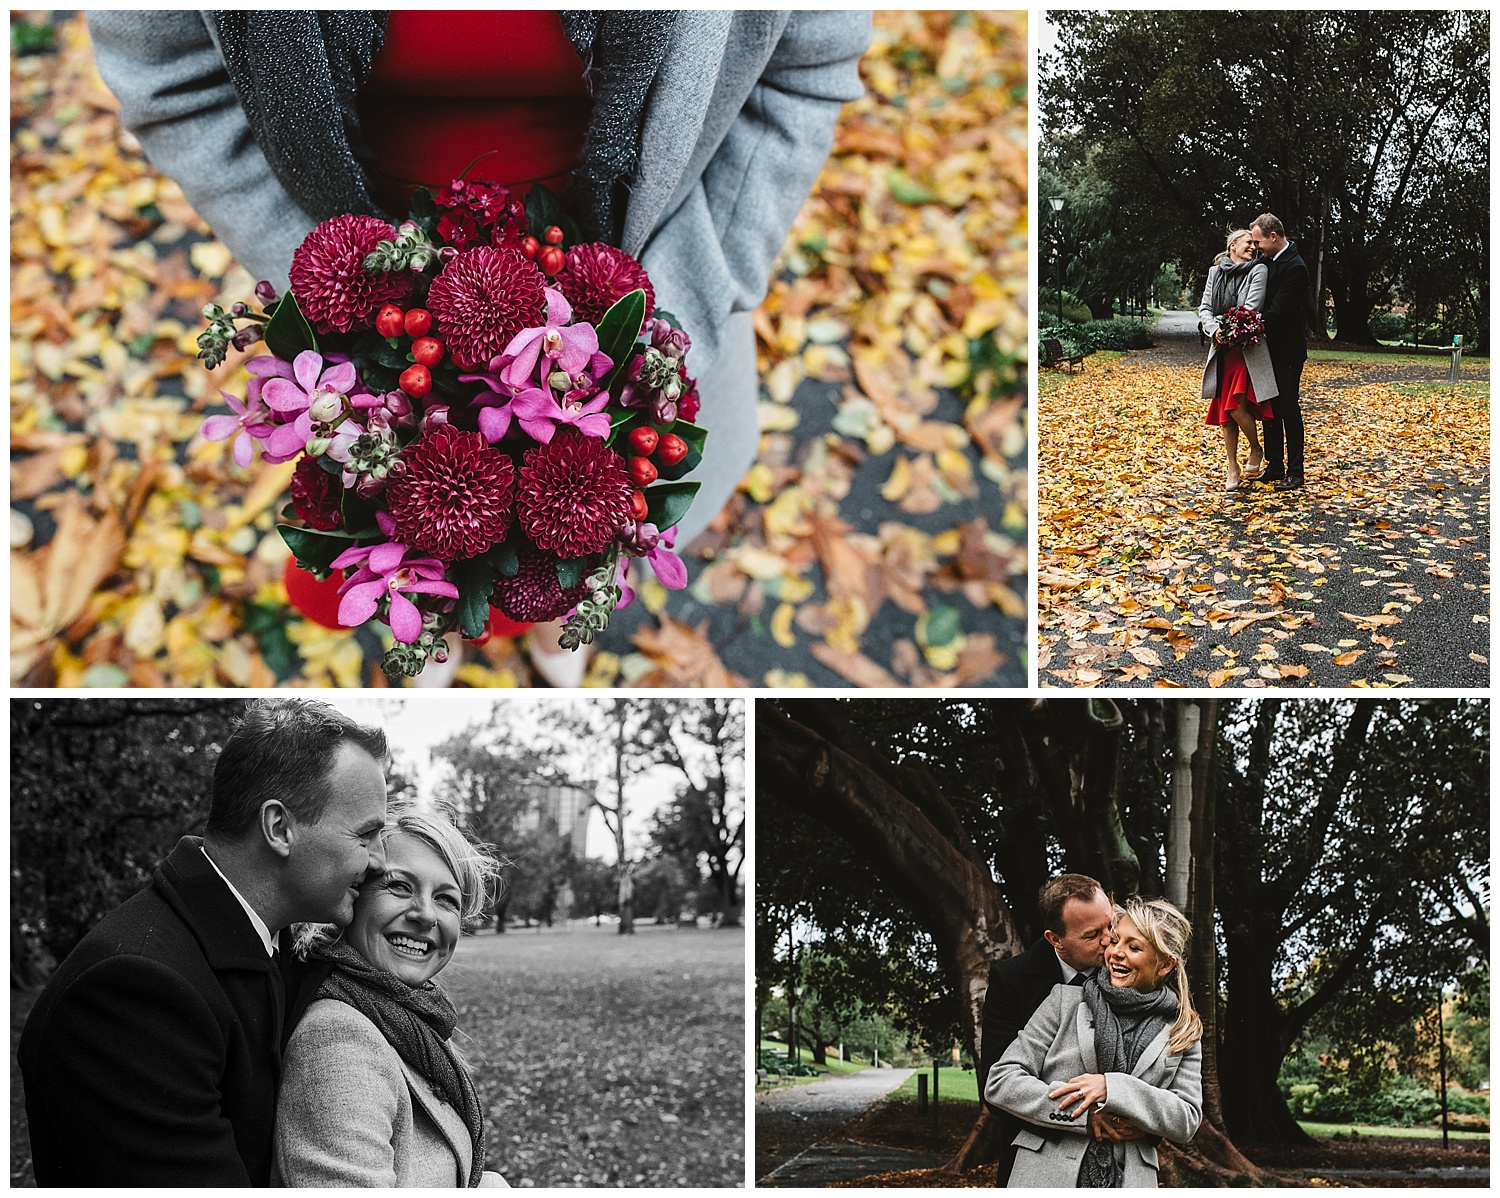 melbourne couples and small backyards weddings in parks